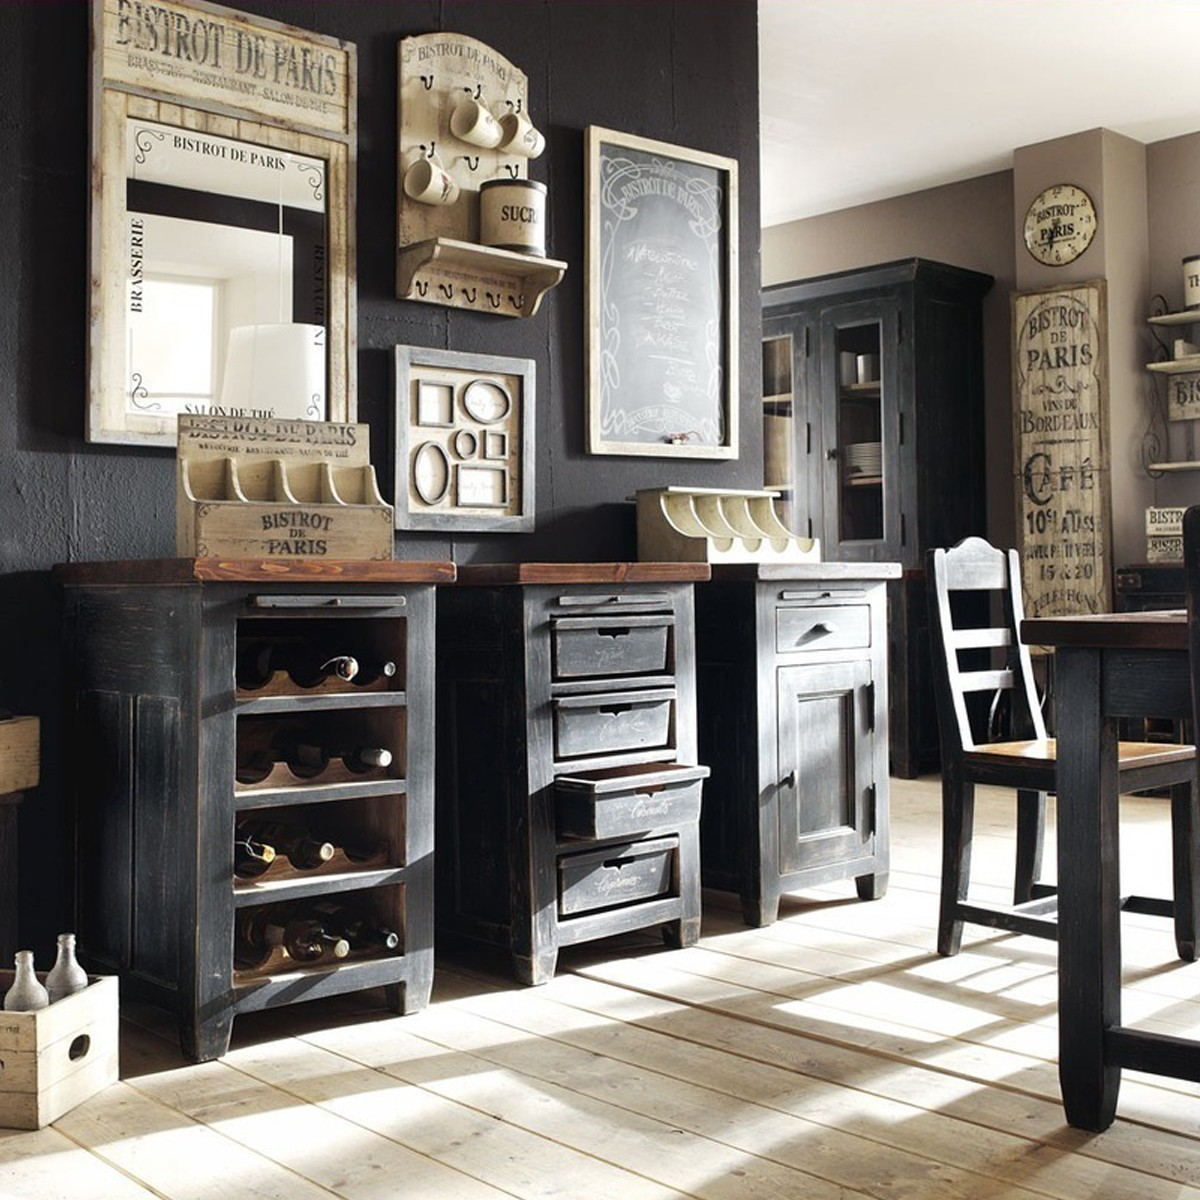 servierwagen k che wagen cleo massiv mit 4 rollen ebay. Black Bedroom Furniture Sets. Home Design Ideas